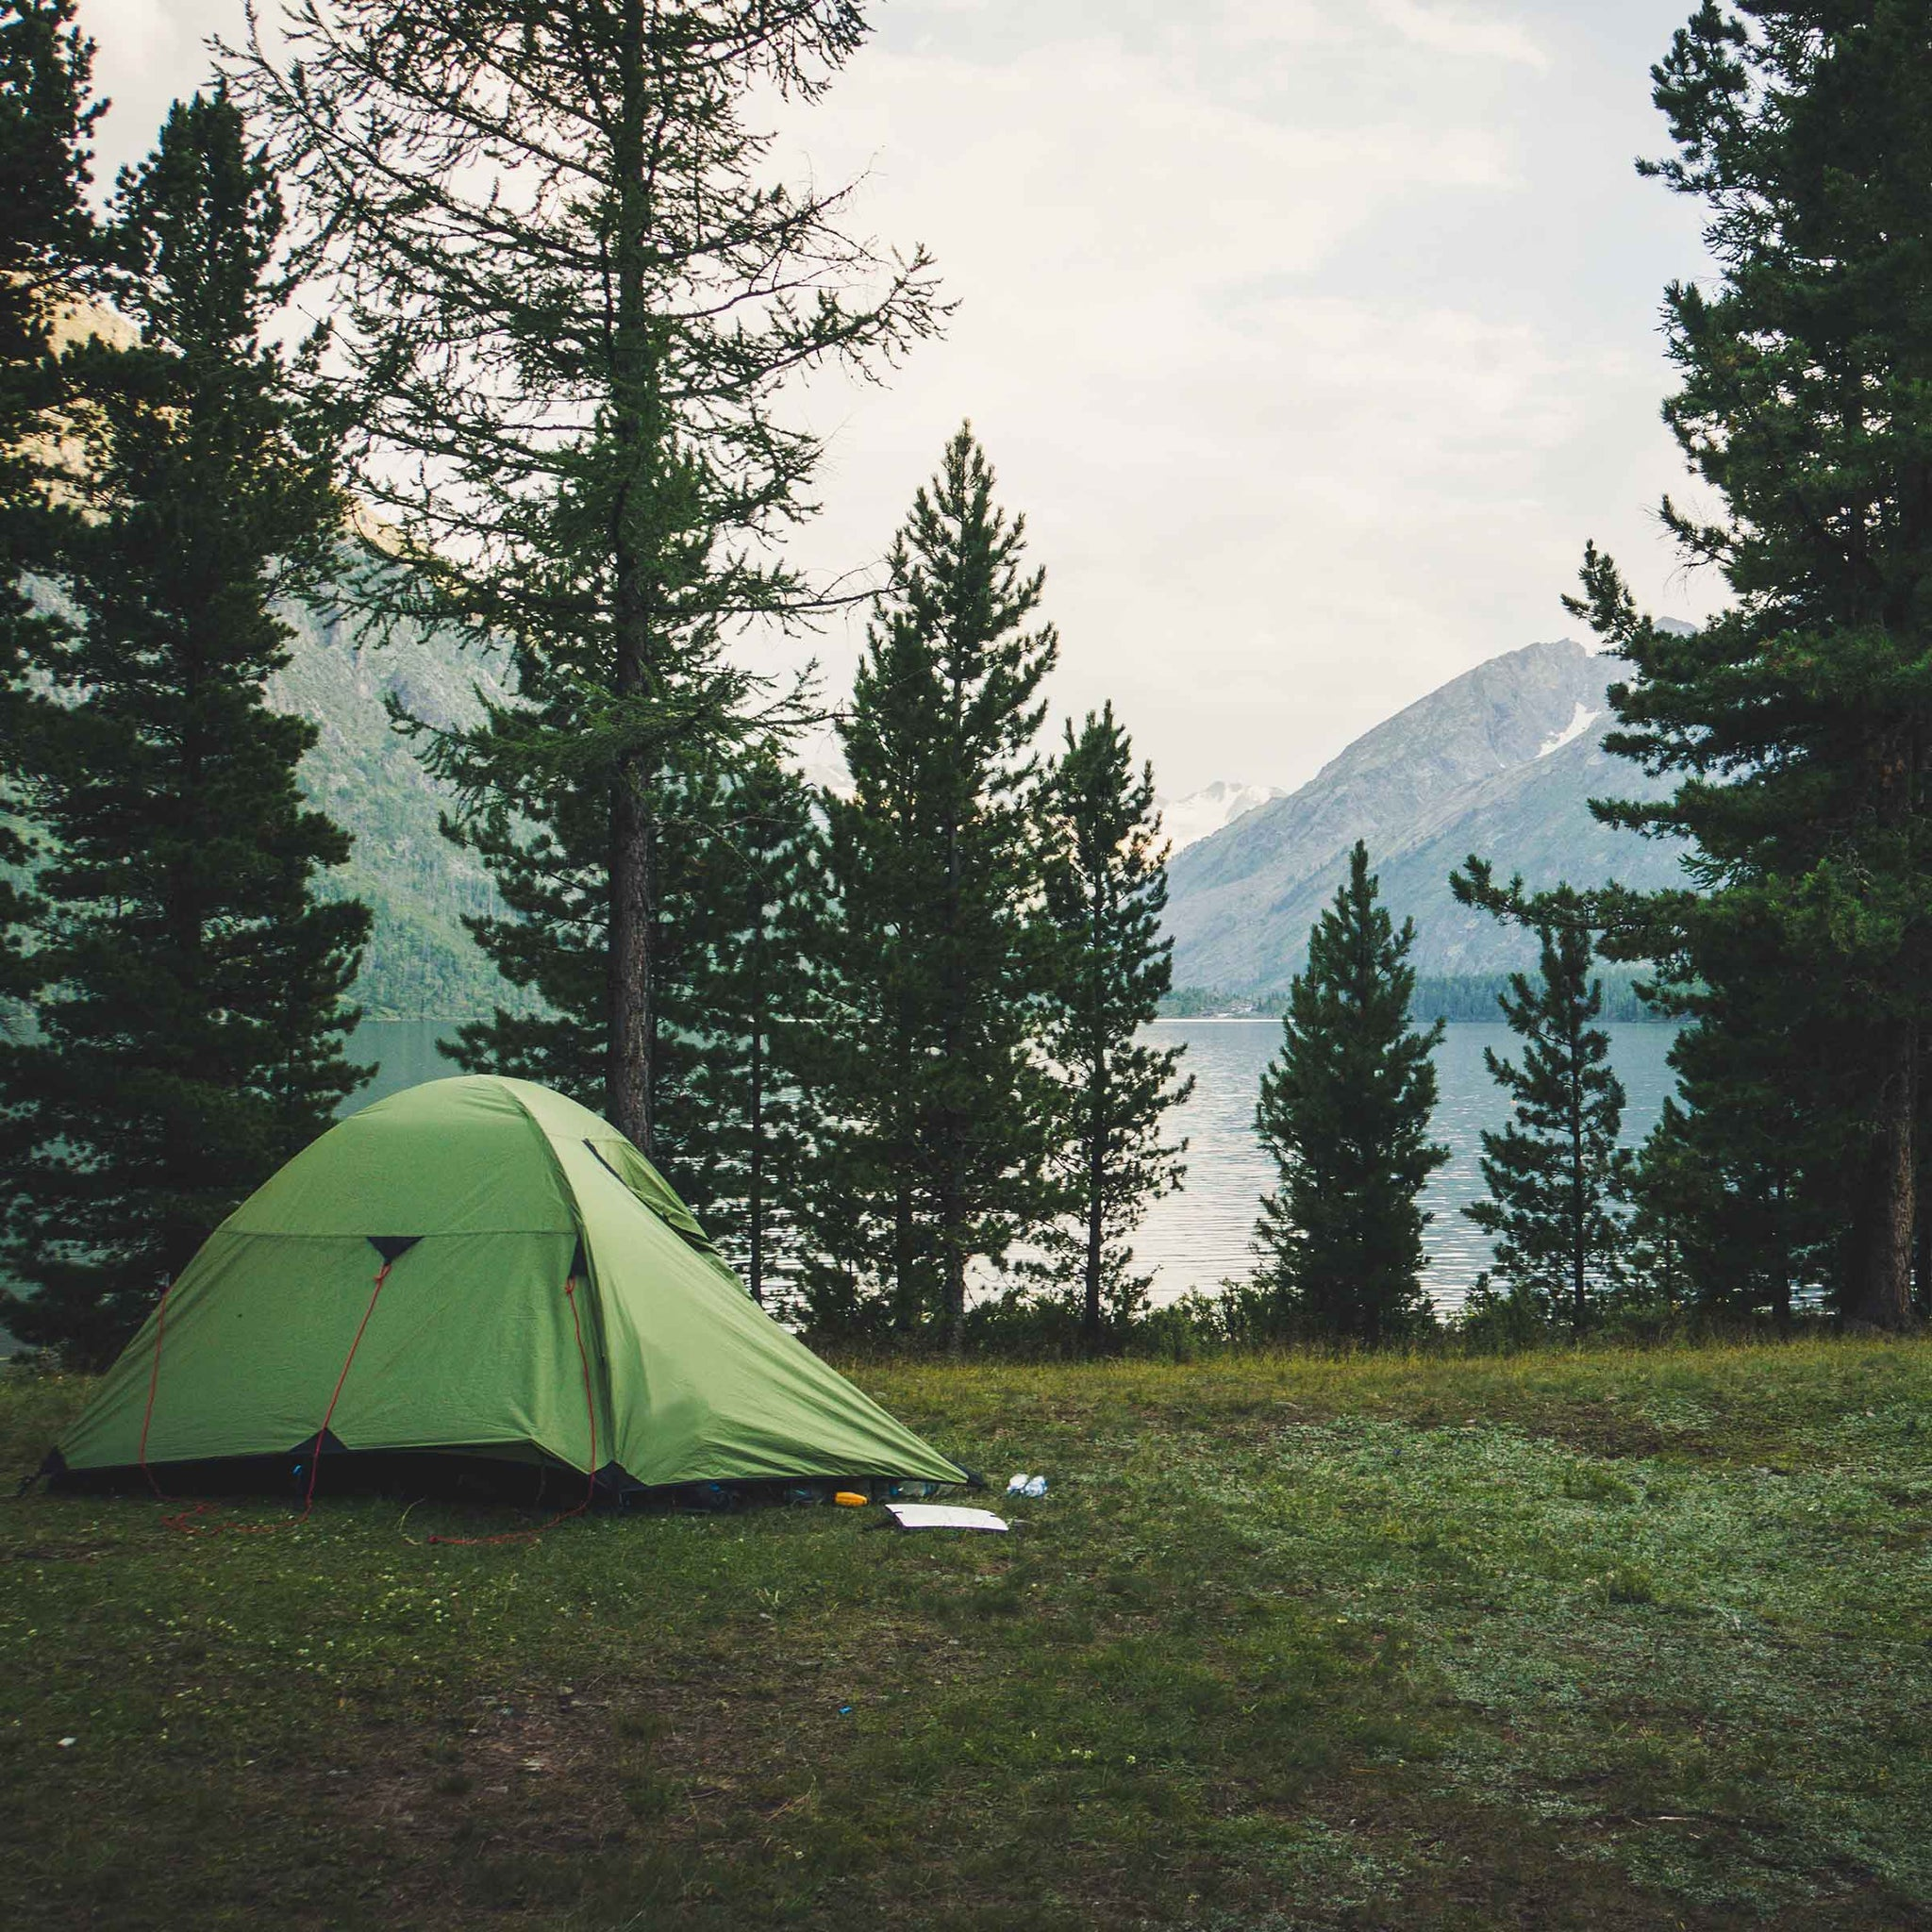 How to pack for a camping trip